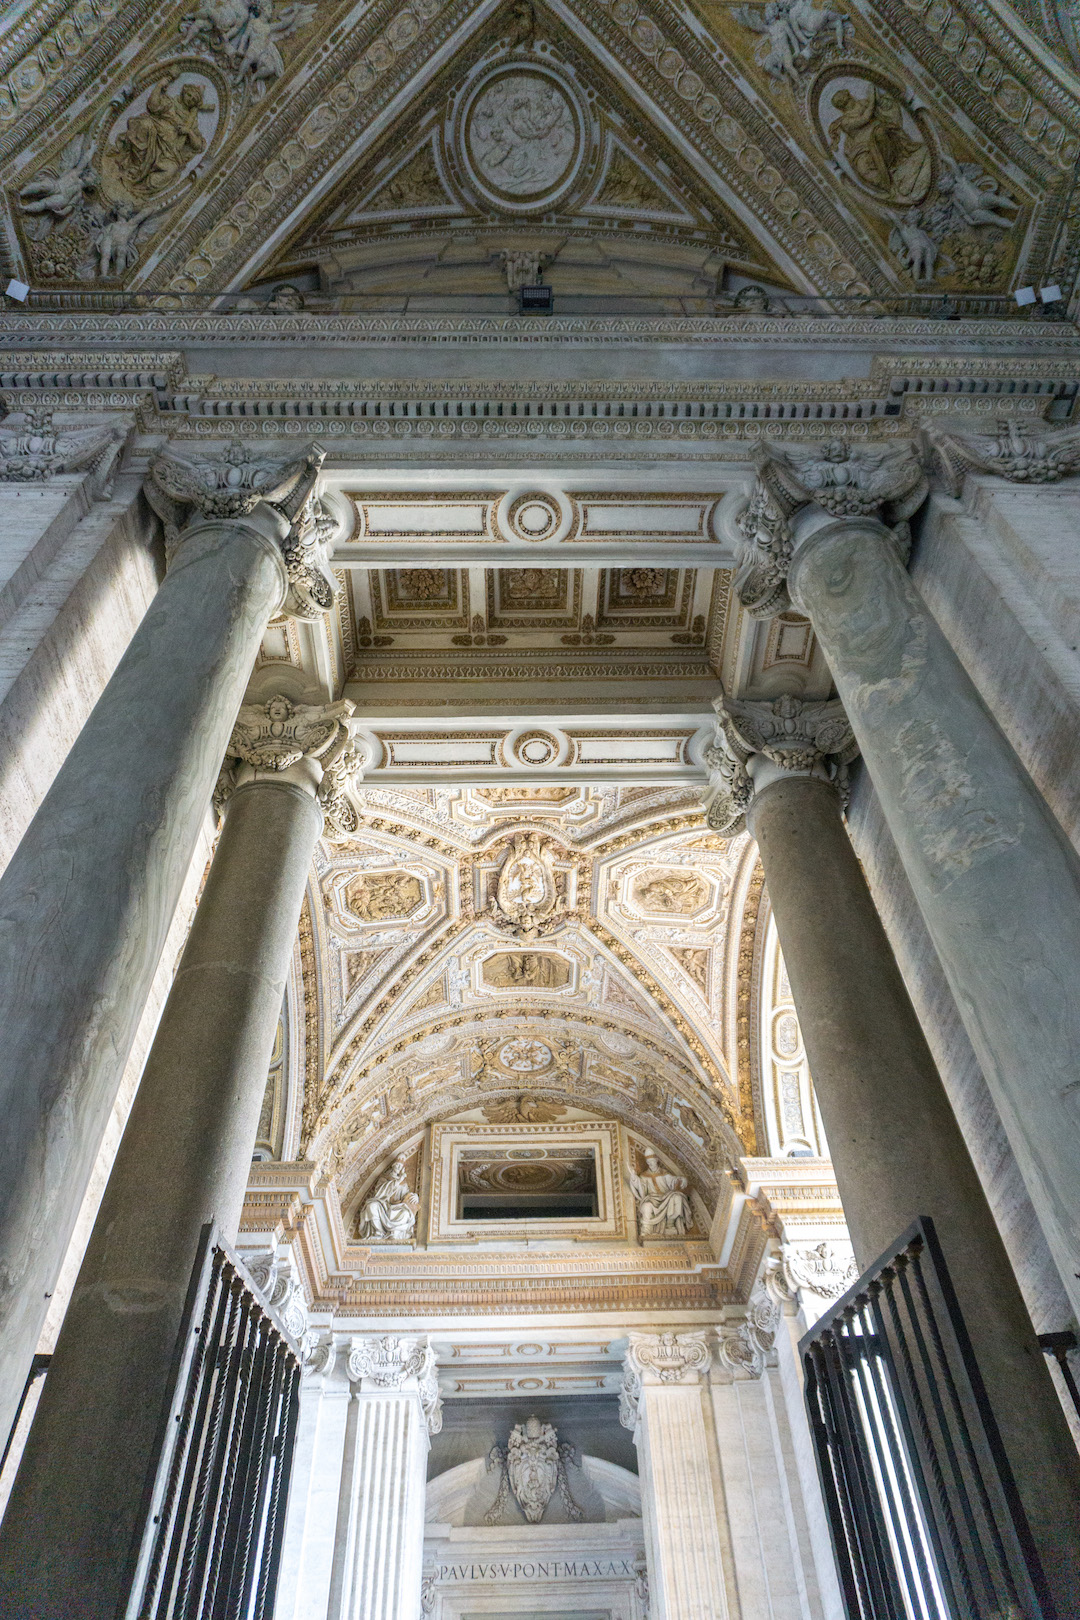 Her_Travel_Edit_Rome_Vatican_Museums